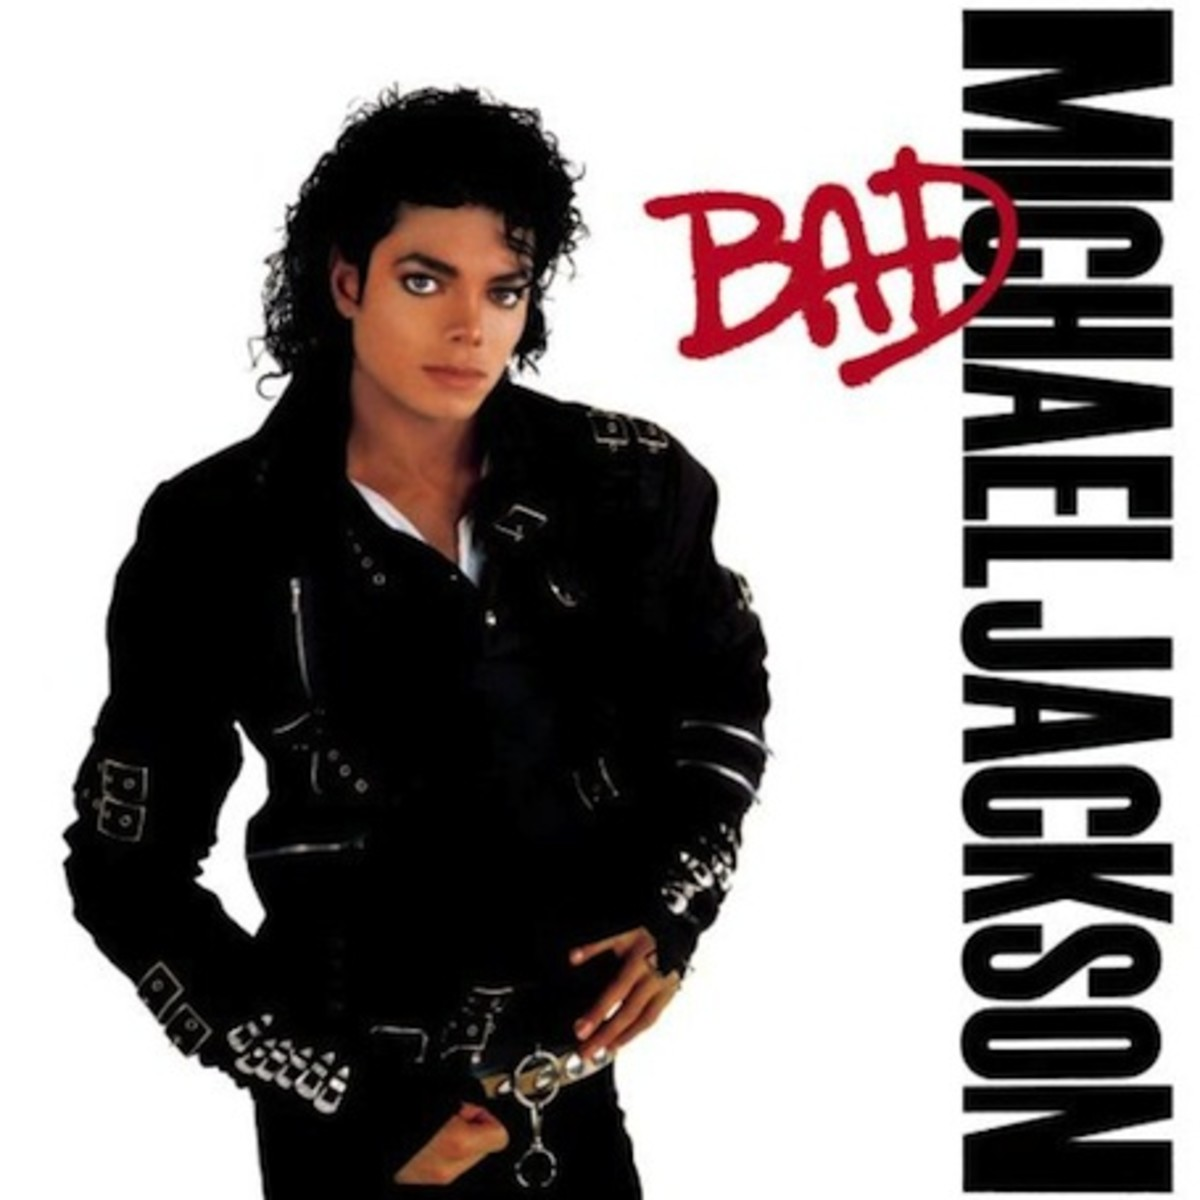 MJ's last album sold between 30-45 million copies but his reputation took a hit as he became the favorite target of tabloids in the late 80's.